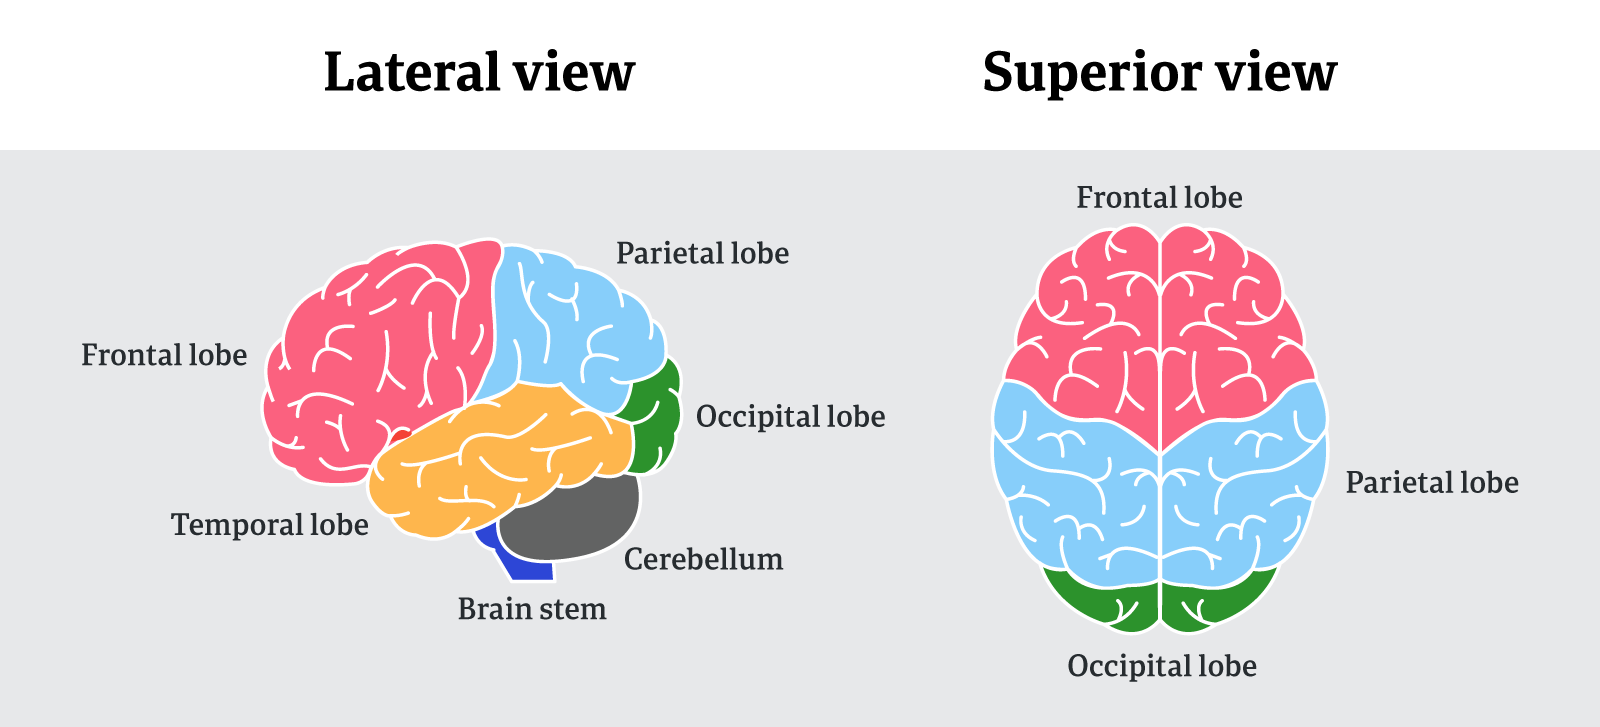 Lateral and superior views of the brain